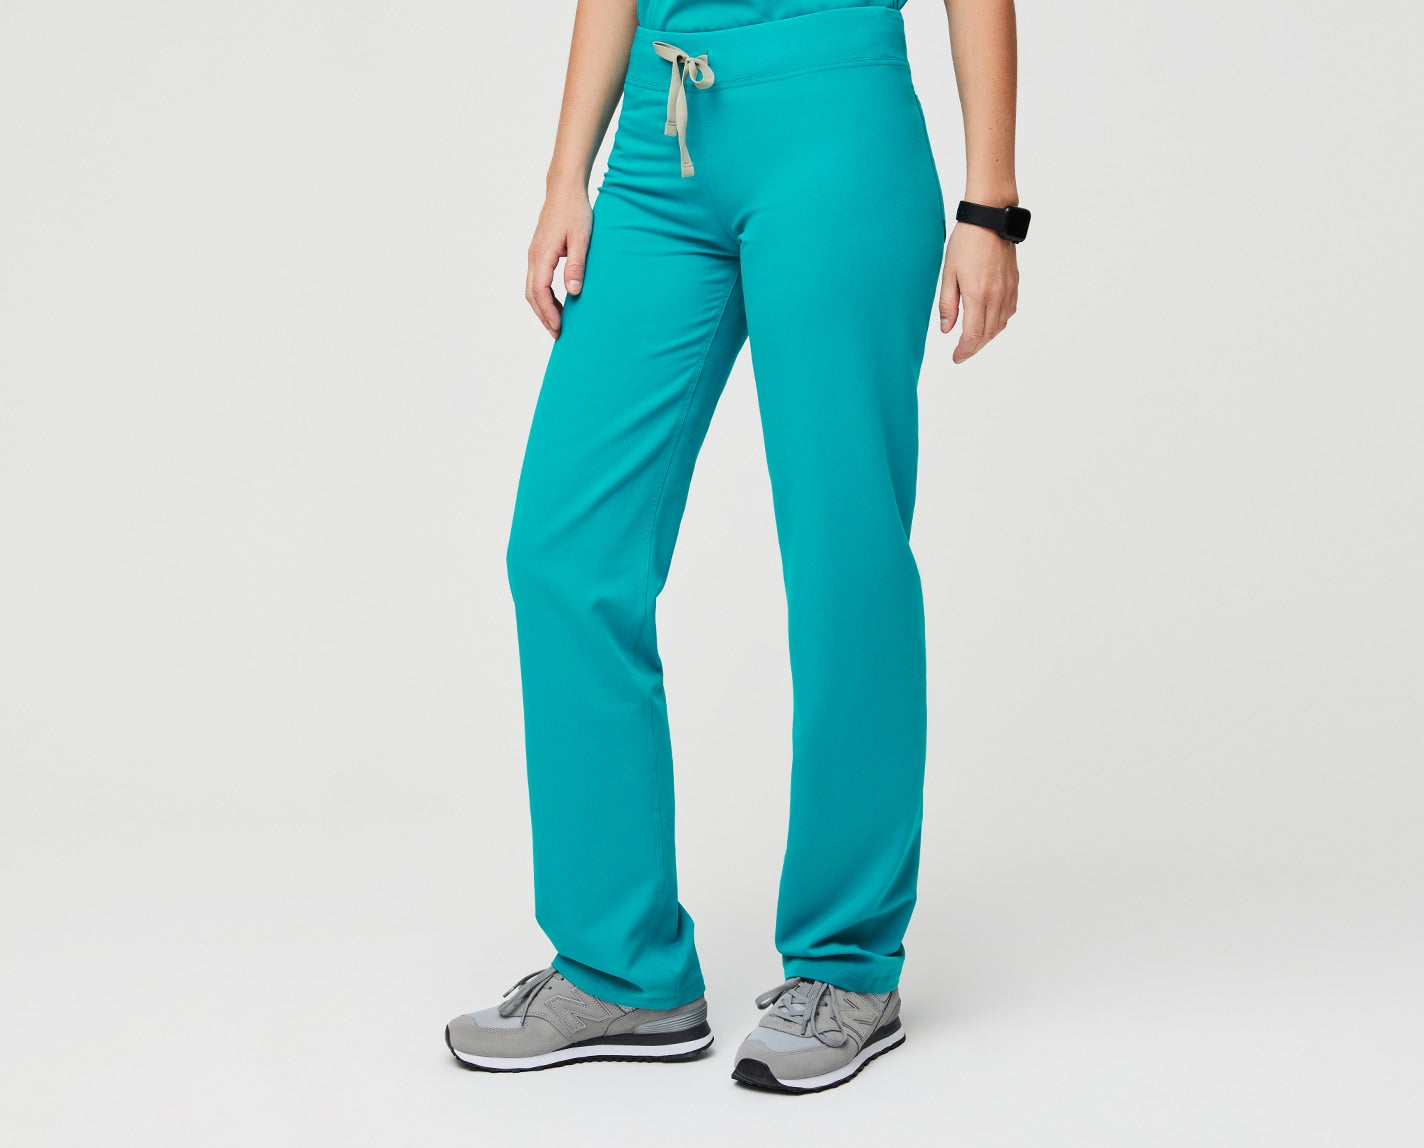 Yoga pants, but make them medical-professional-chic. The Livingston is made with our proprietary FIONx fabric and has a straight leg, comfy waistband and back patch pockets.